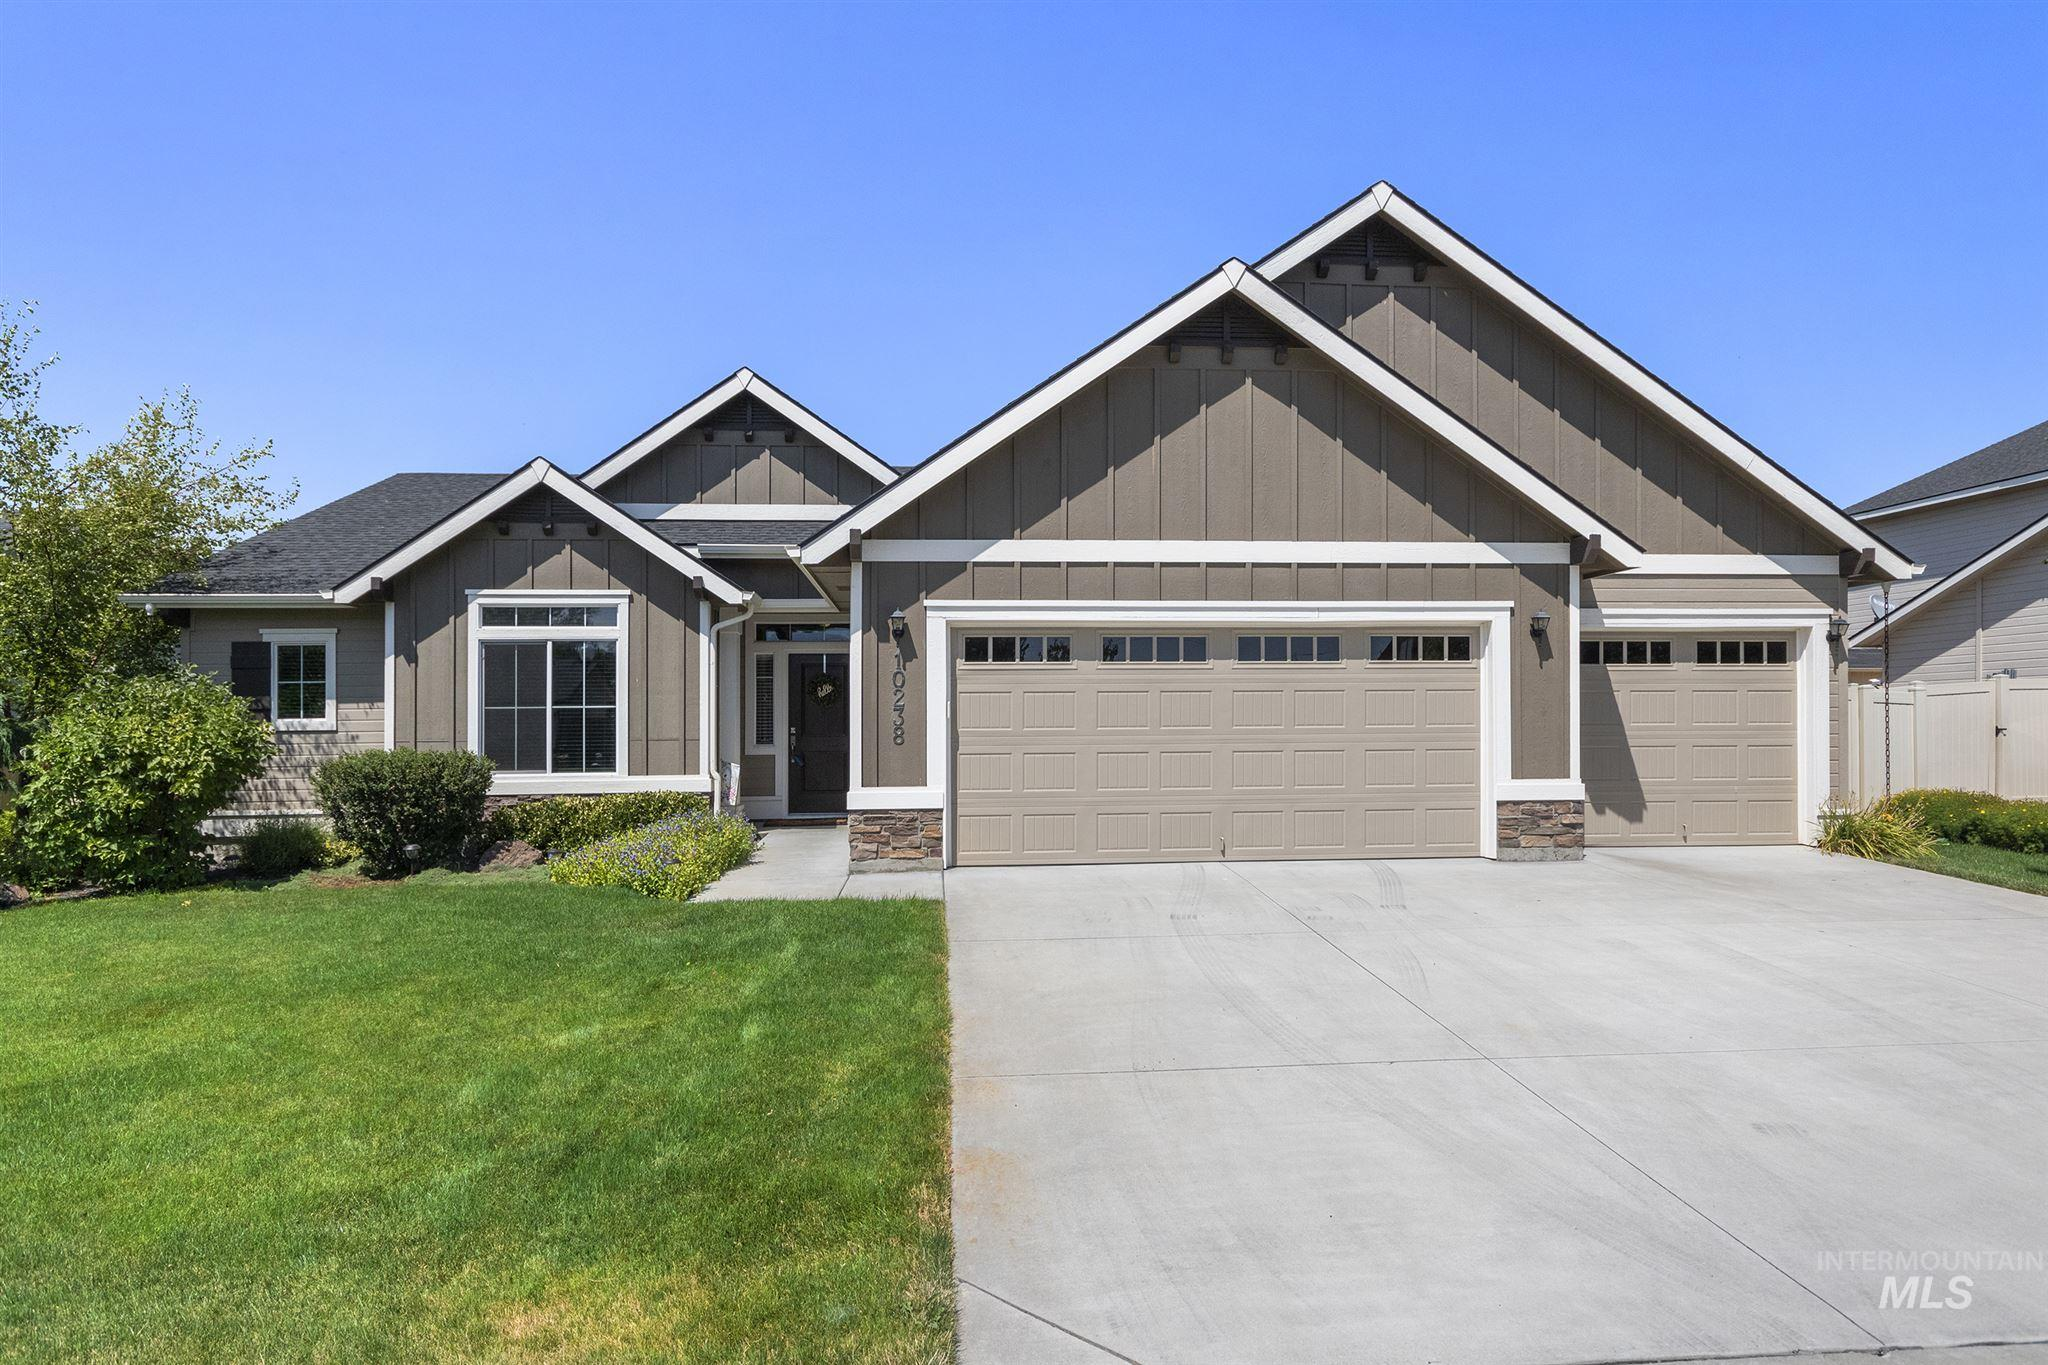 Photo for 10238 W Snow Wolf Dr, Star, ID 83669 (MLS # 98775792)